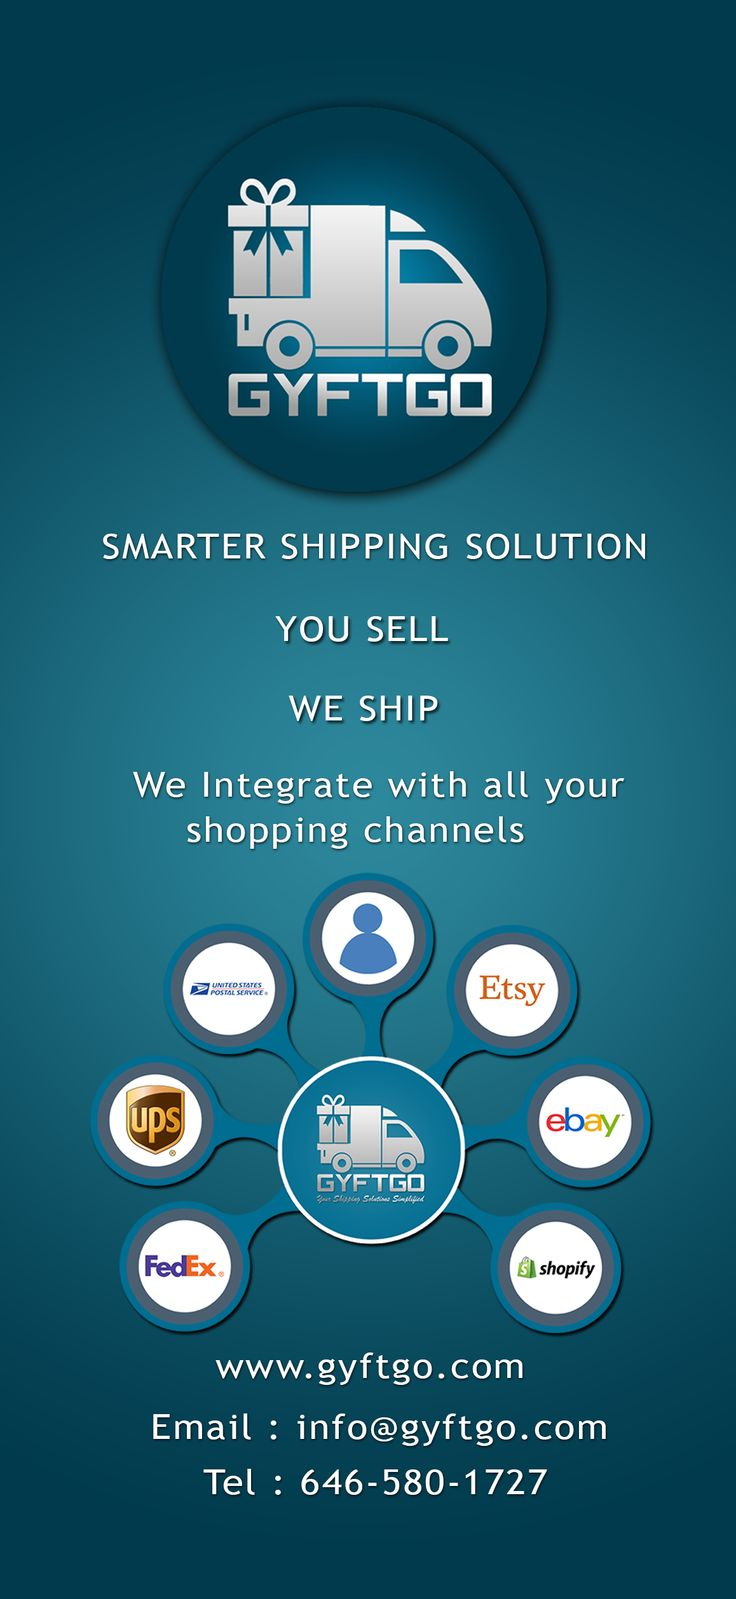 B2B Shipping Solutions - Gyftgo's seamless management system helps you save time and money from the get go.  Grow Your Business With Smarter Shipping Solutions From GyftGo CALL NOW 646-580-1727